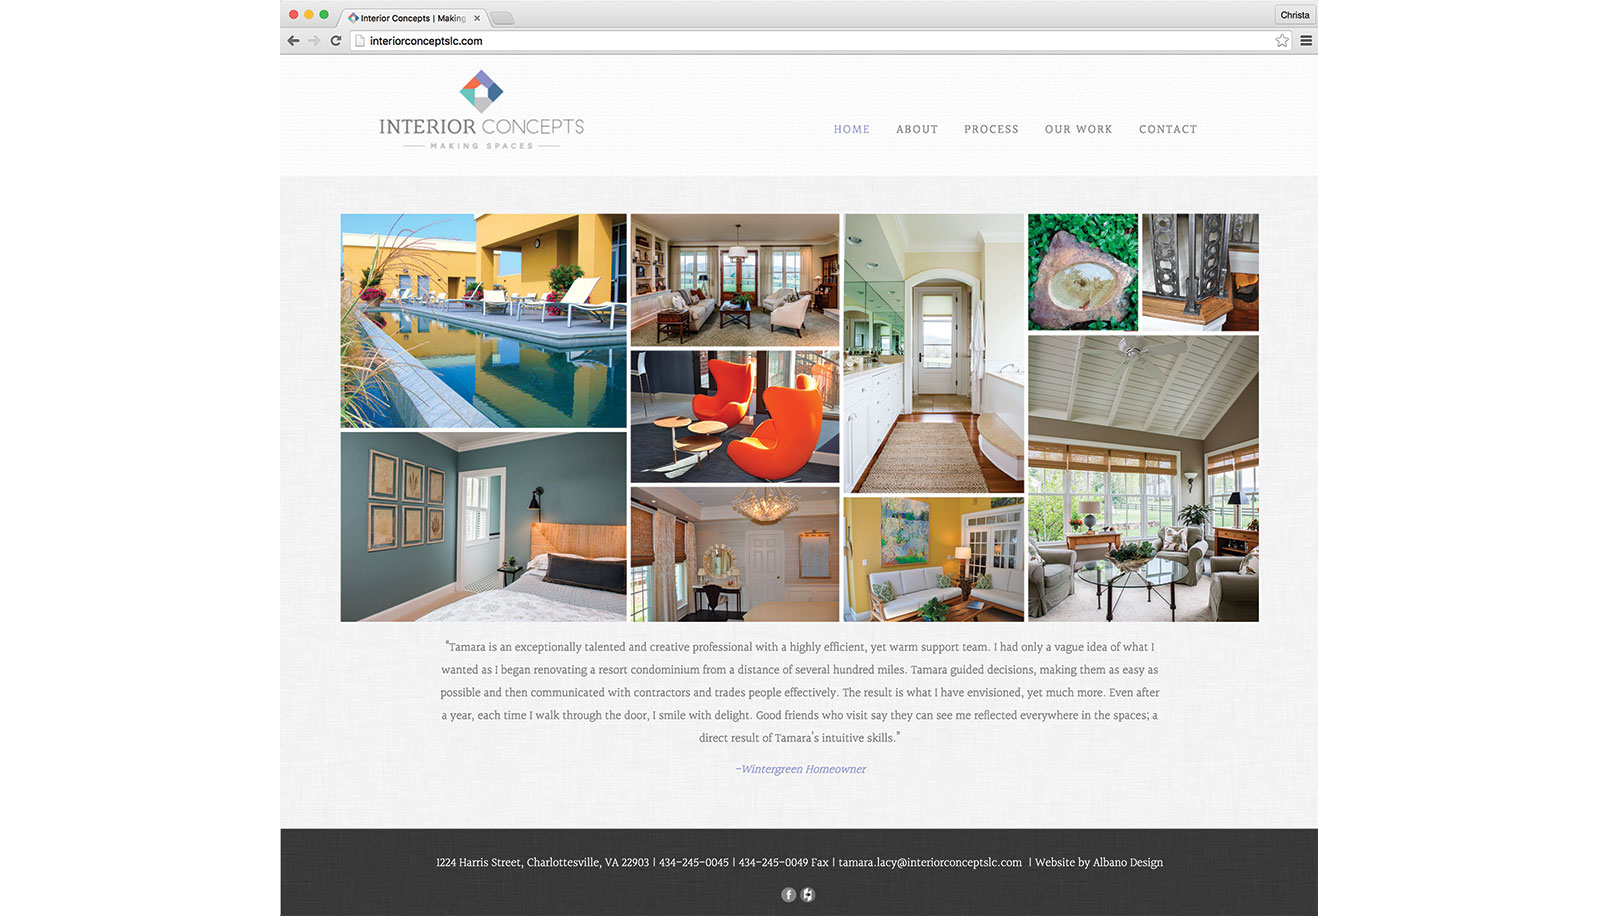 interior concepts website, logo design, business cards, signage and photography